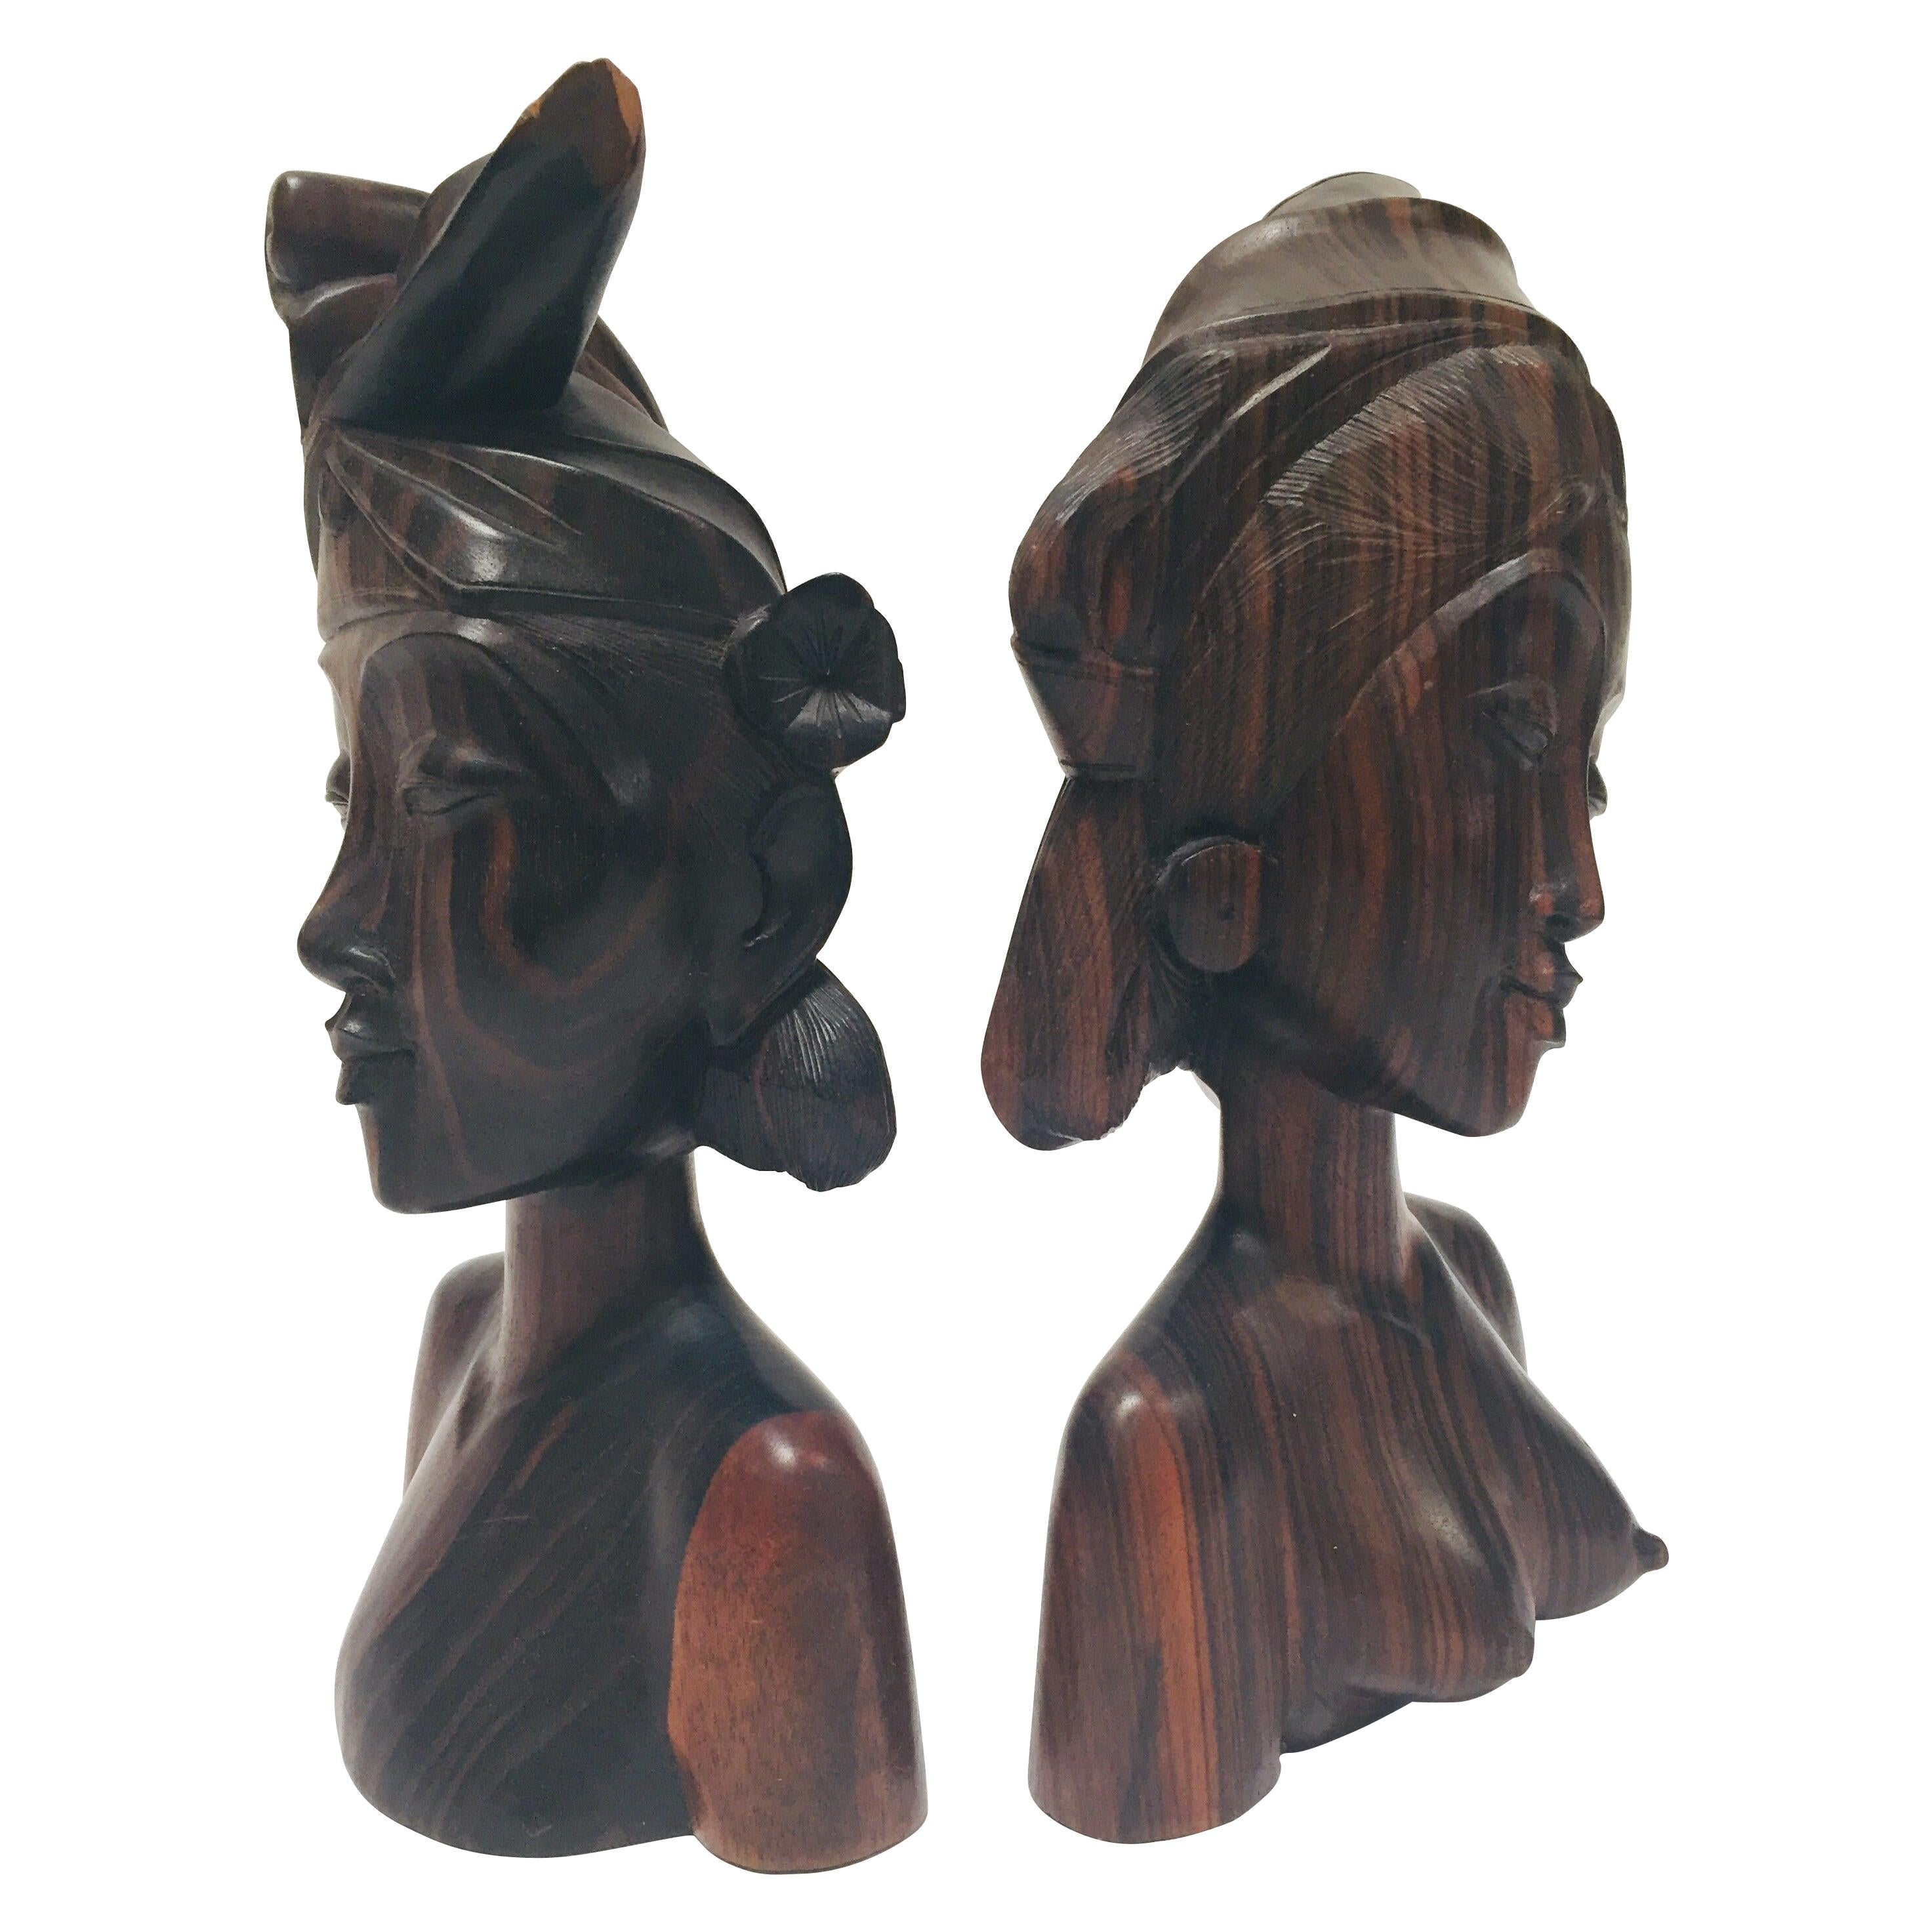 Hand Carved Wooden Balinese Busts Bookends